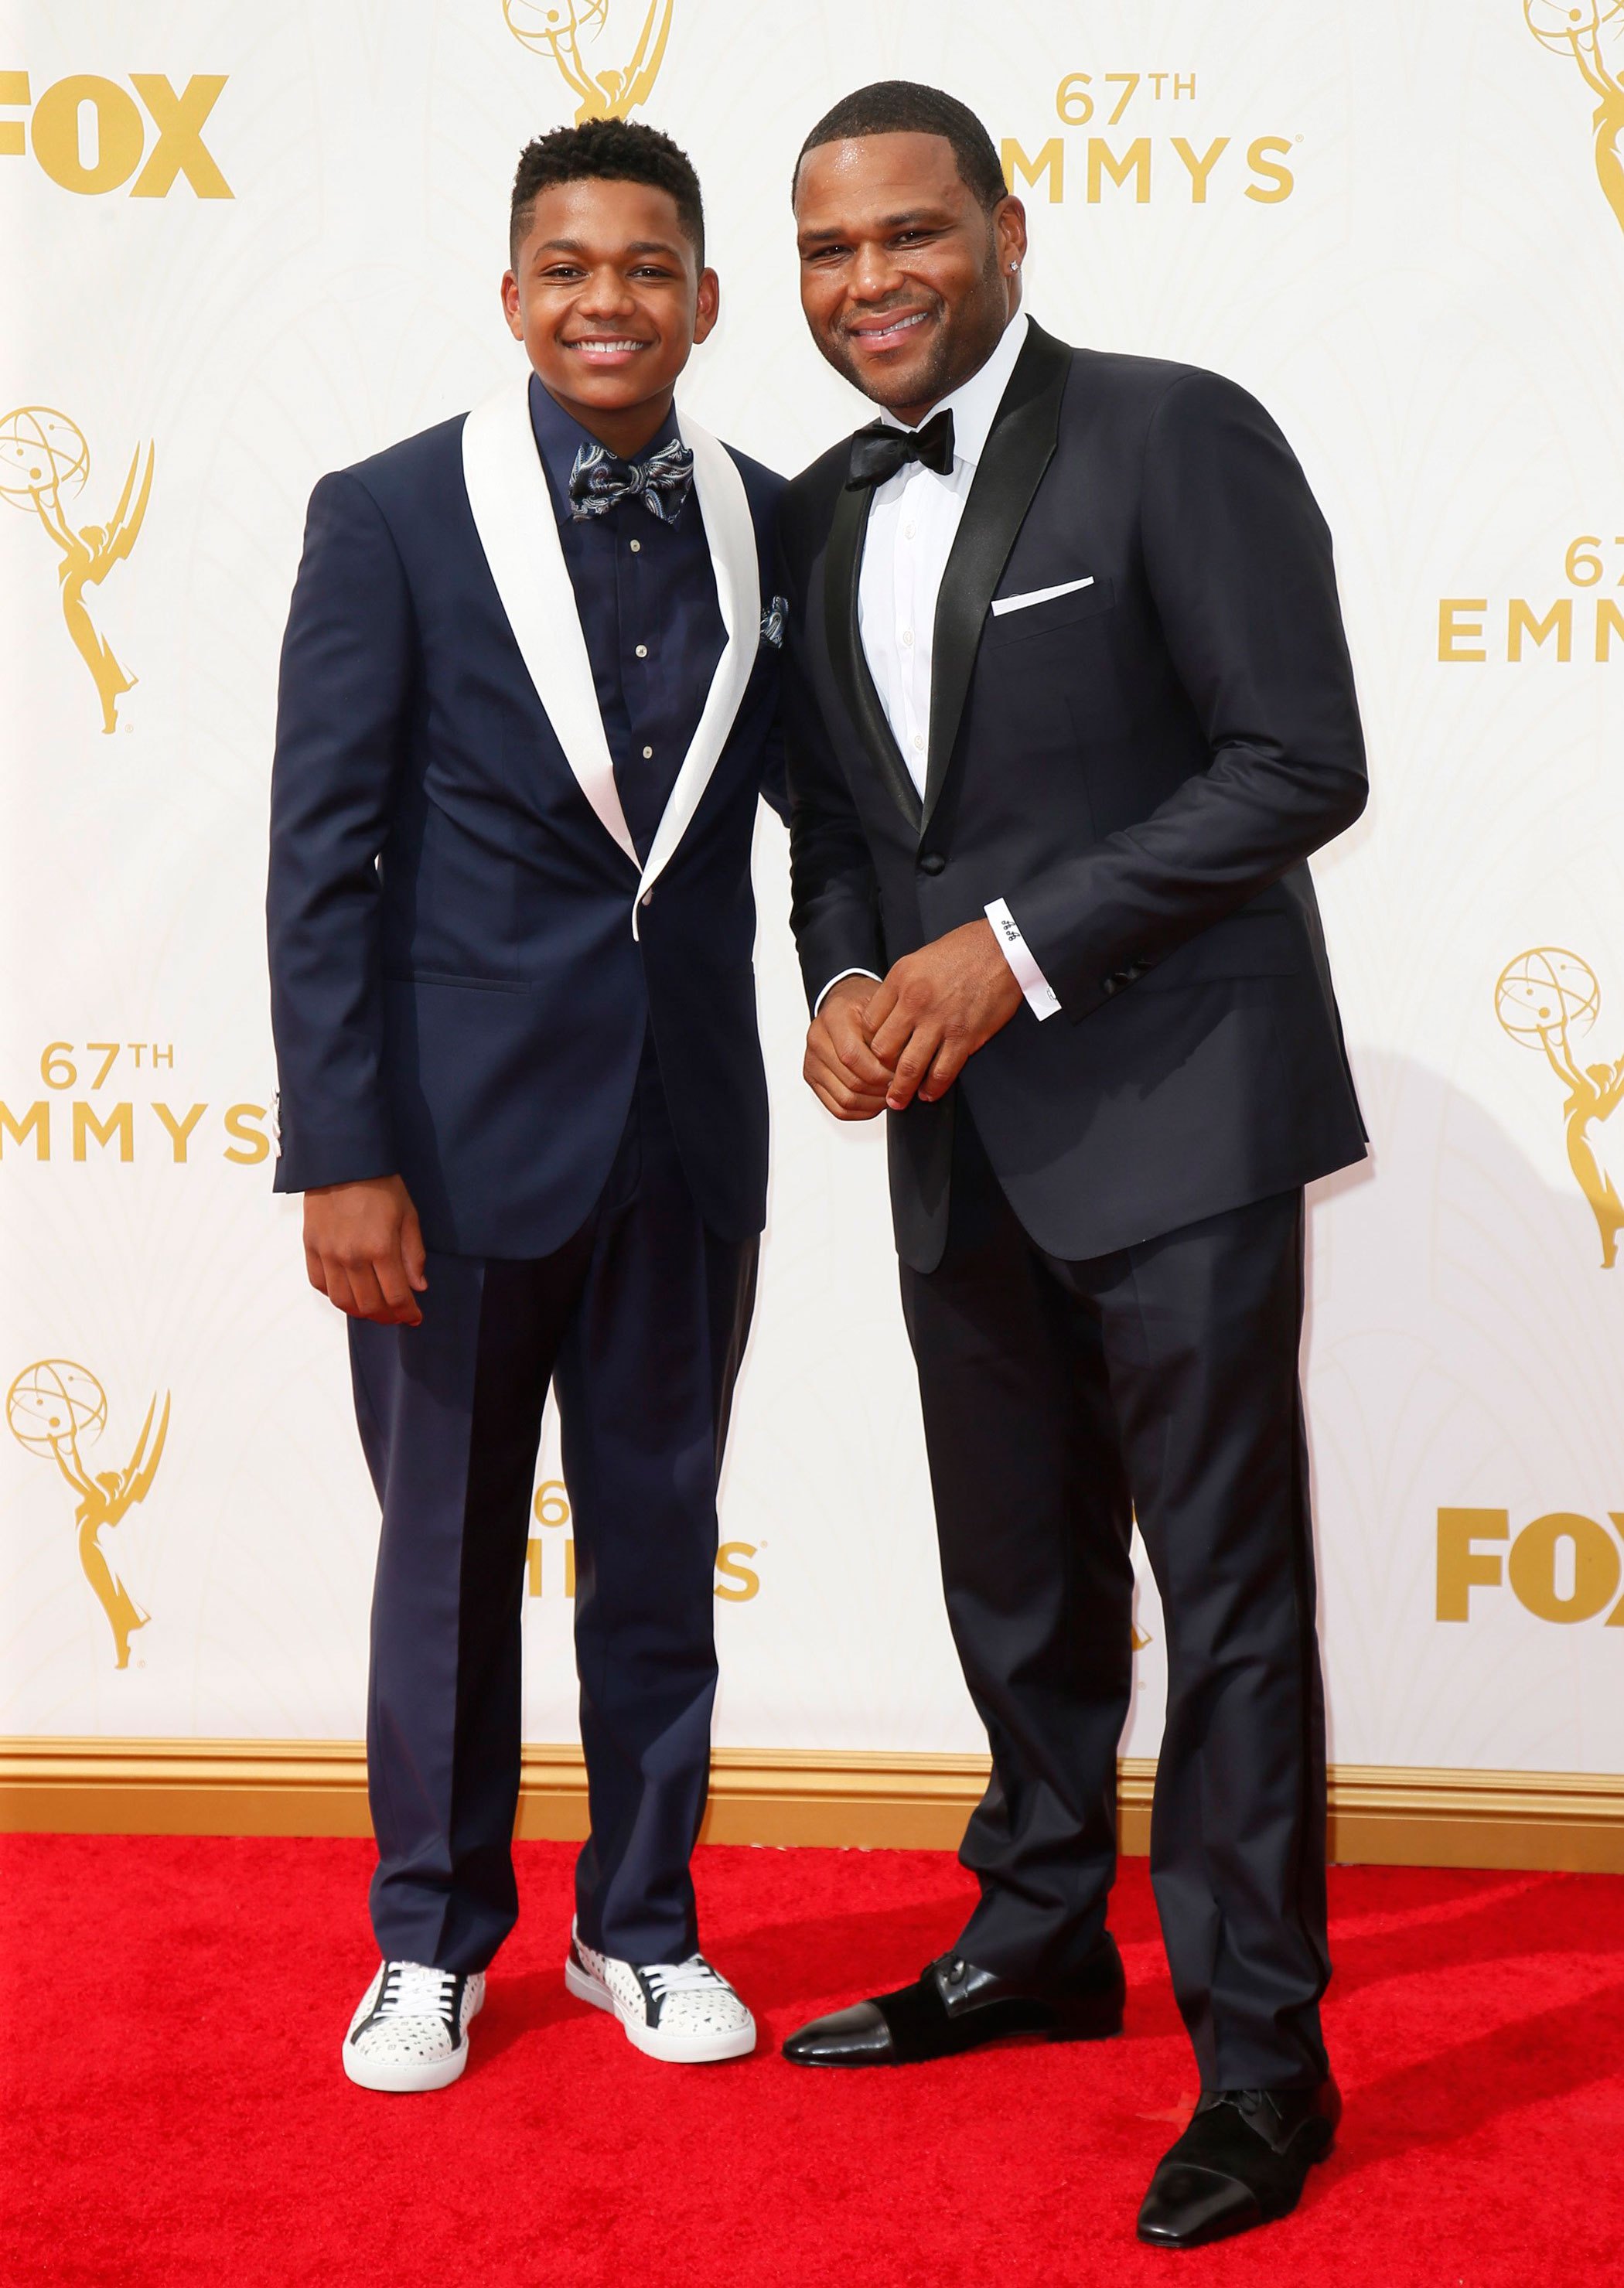 Nathan Anderson and Anthony Anderson at the 67th Emmy Award on Sept. 20, 2015 in Los Angeles.